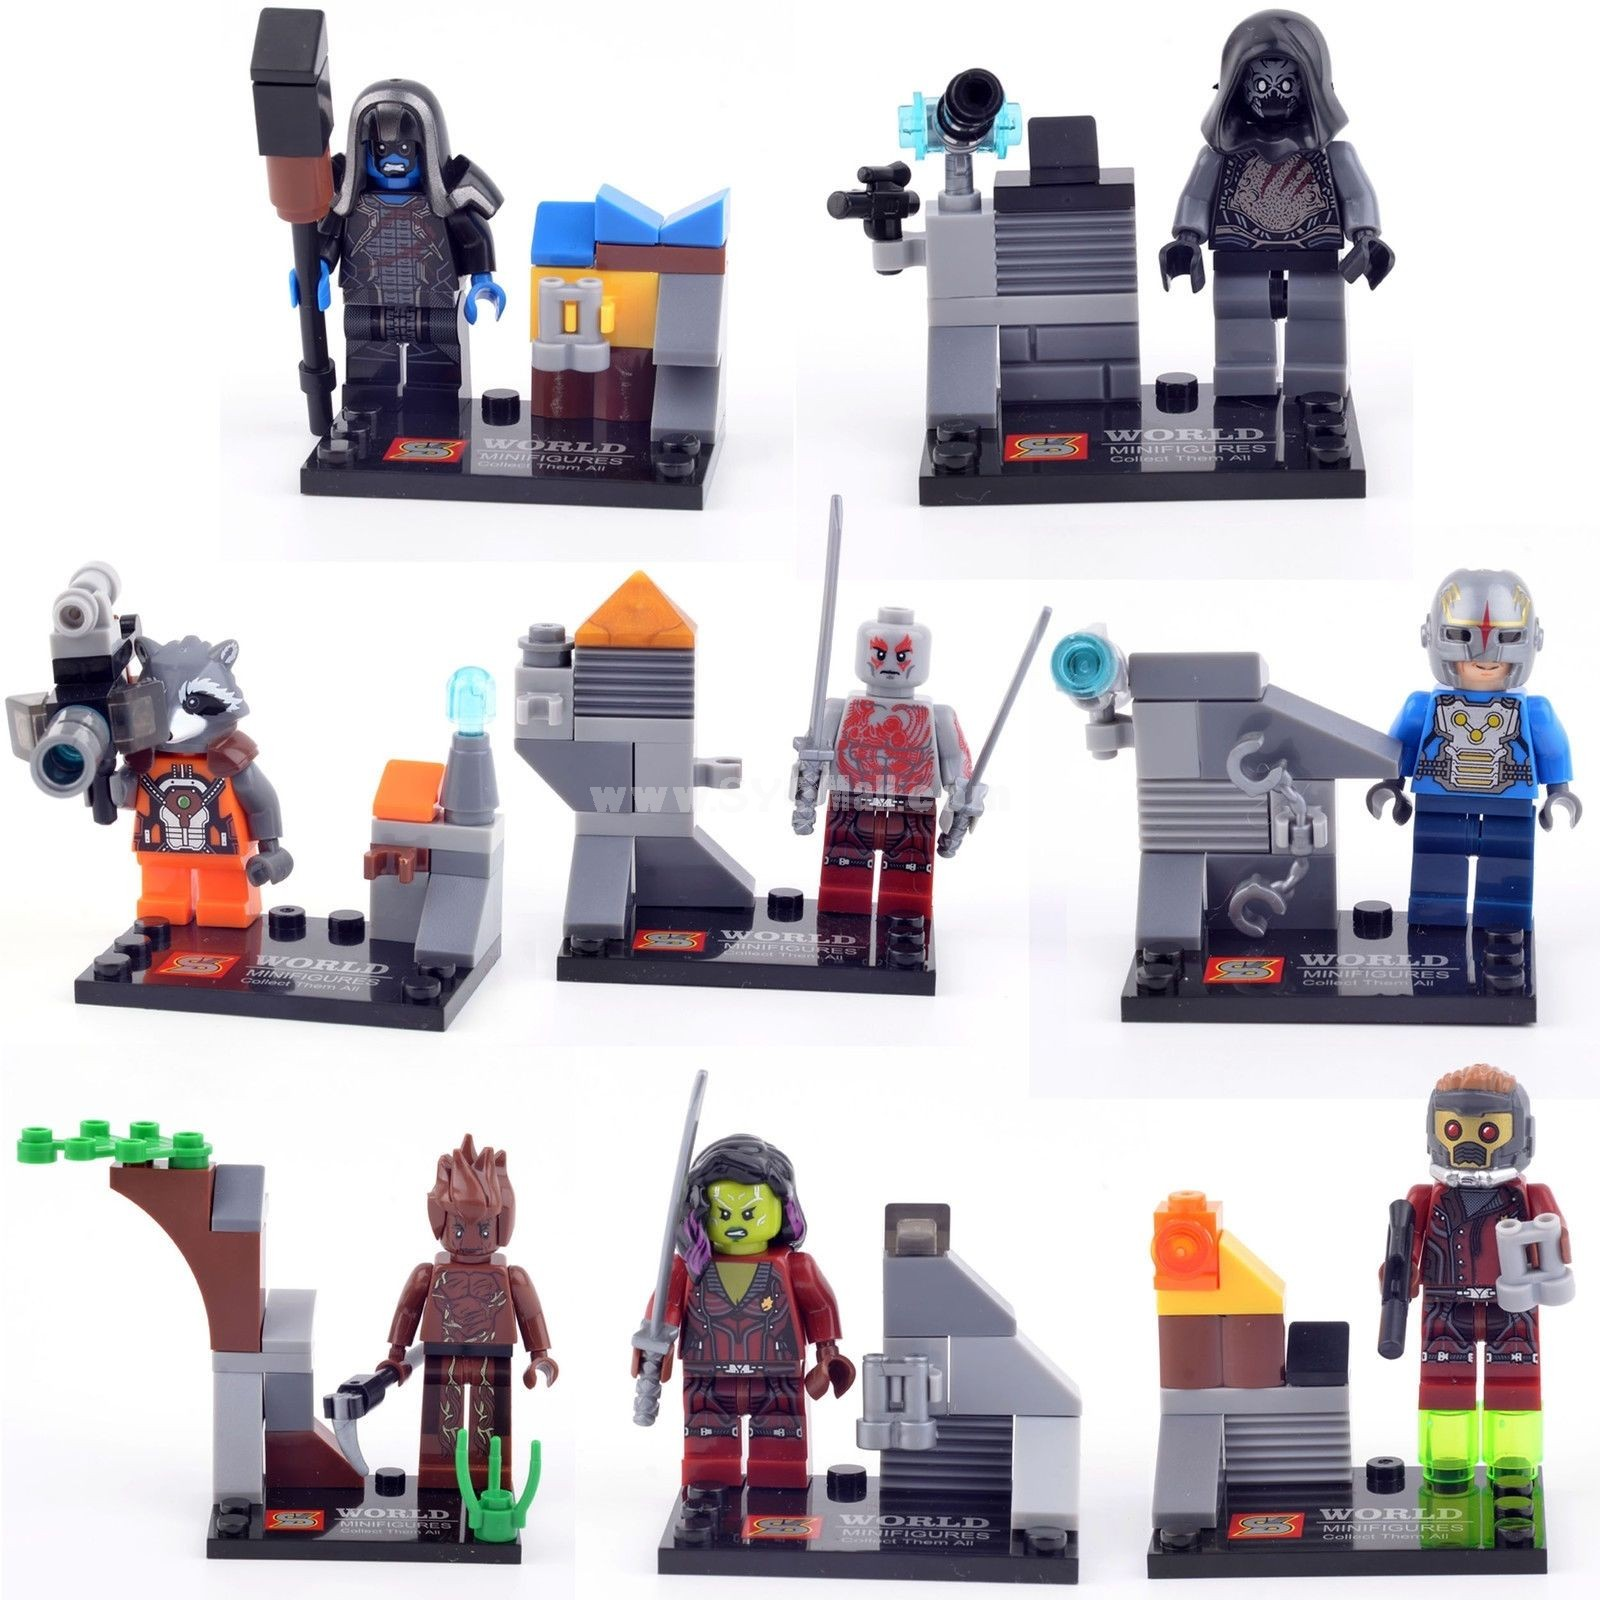 Lego guardians of the galaxy gamora 88049 notefolio for Galaxy toys